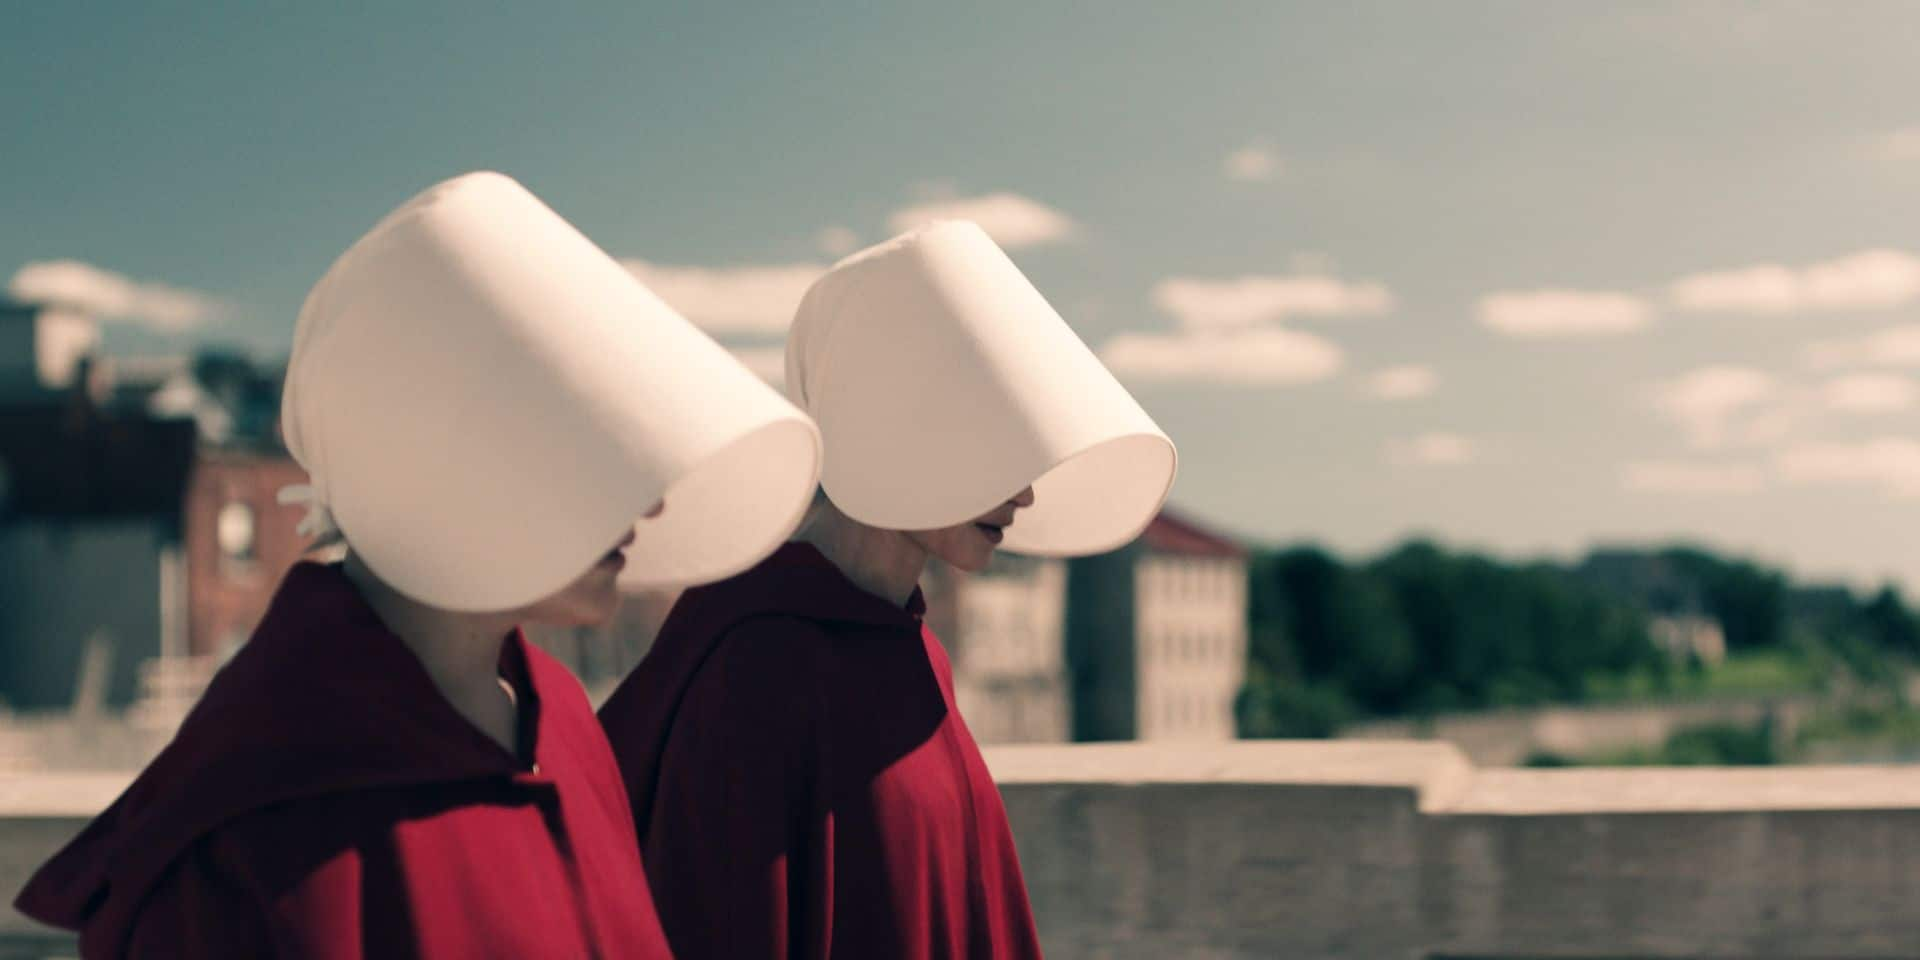 THE HANDMAID'S TALE, (Season 1, Episode 1, aired April 26, 2017). ph: Take Five/©Hulu/courtesy